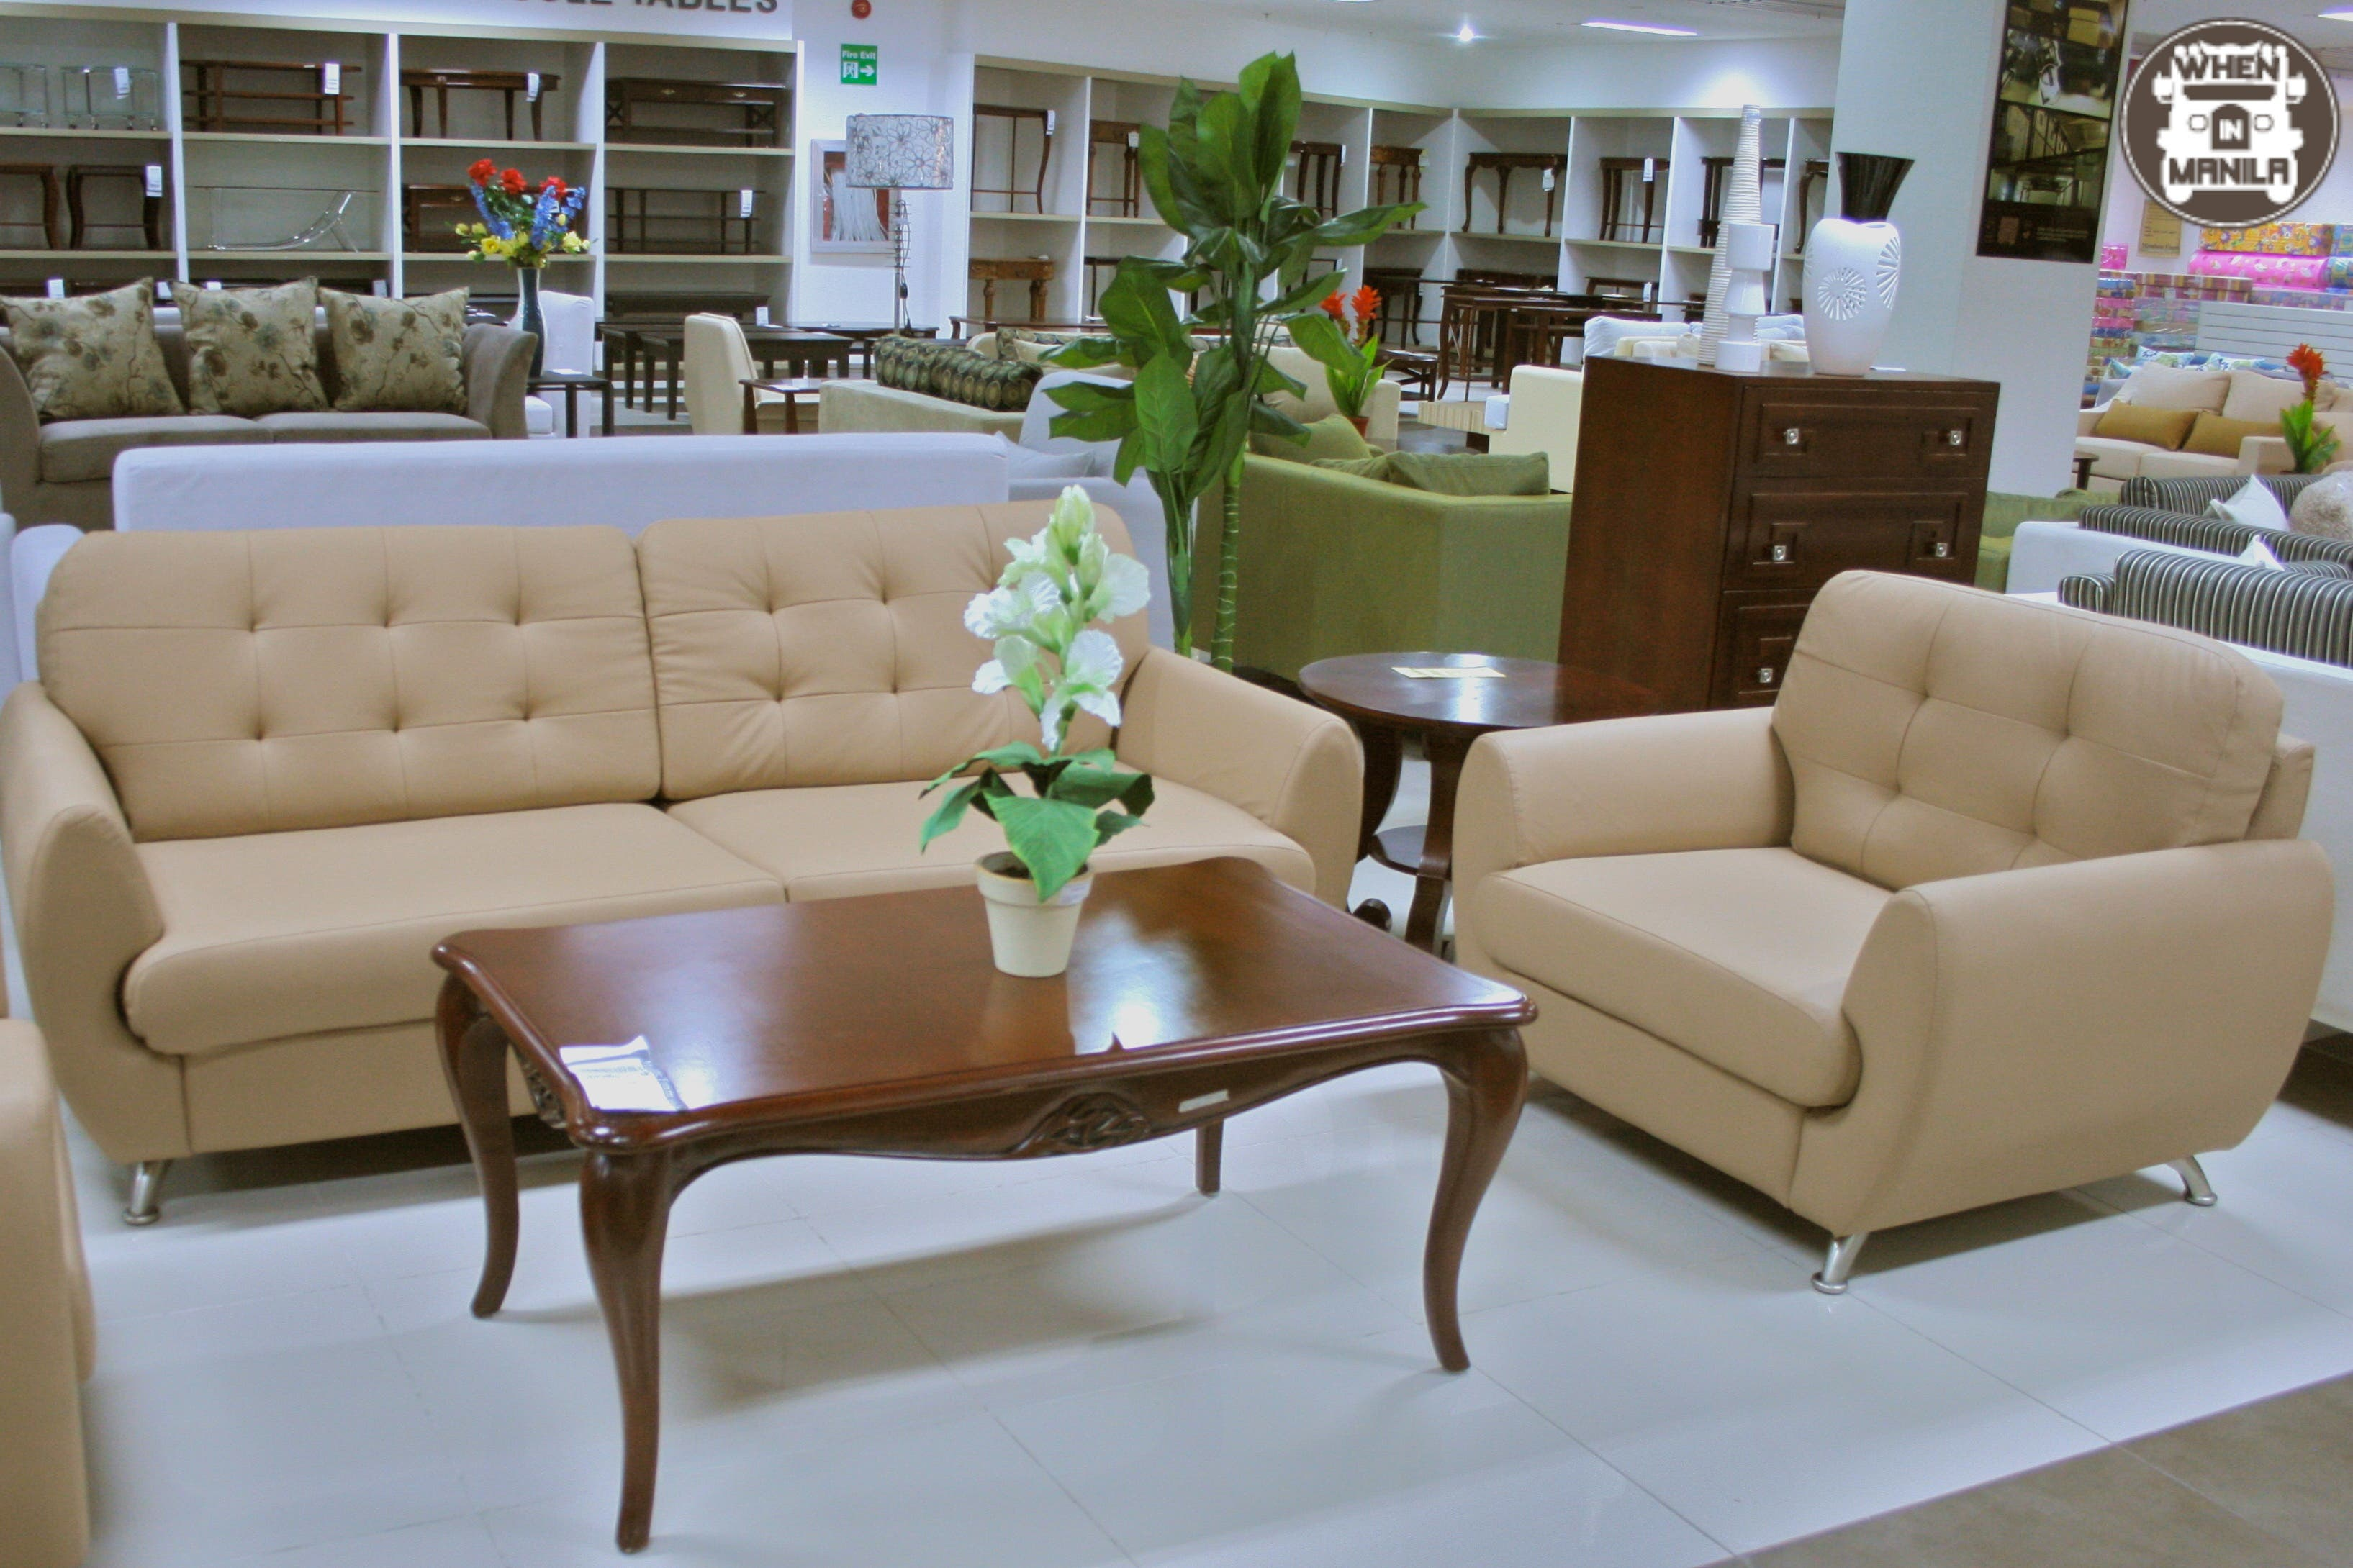 Sofa Bed Sets That Can Be Customized As Per Your Personal Wants And Needs Just One Of The Special Services Mandaue Foam Las Pinas Has To Offer